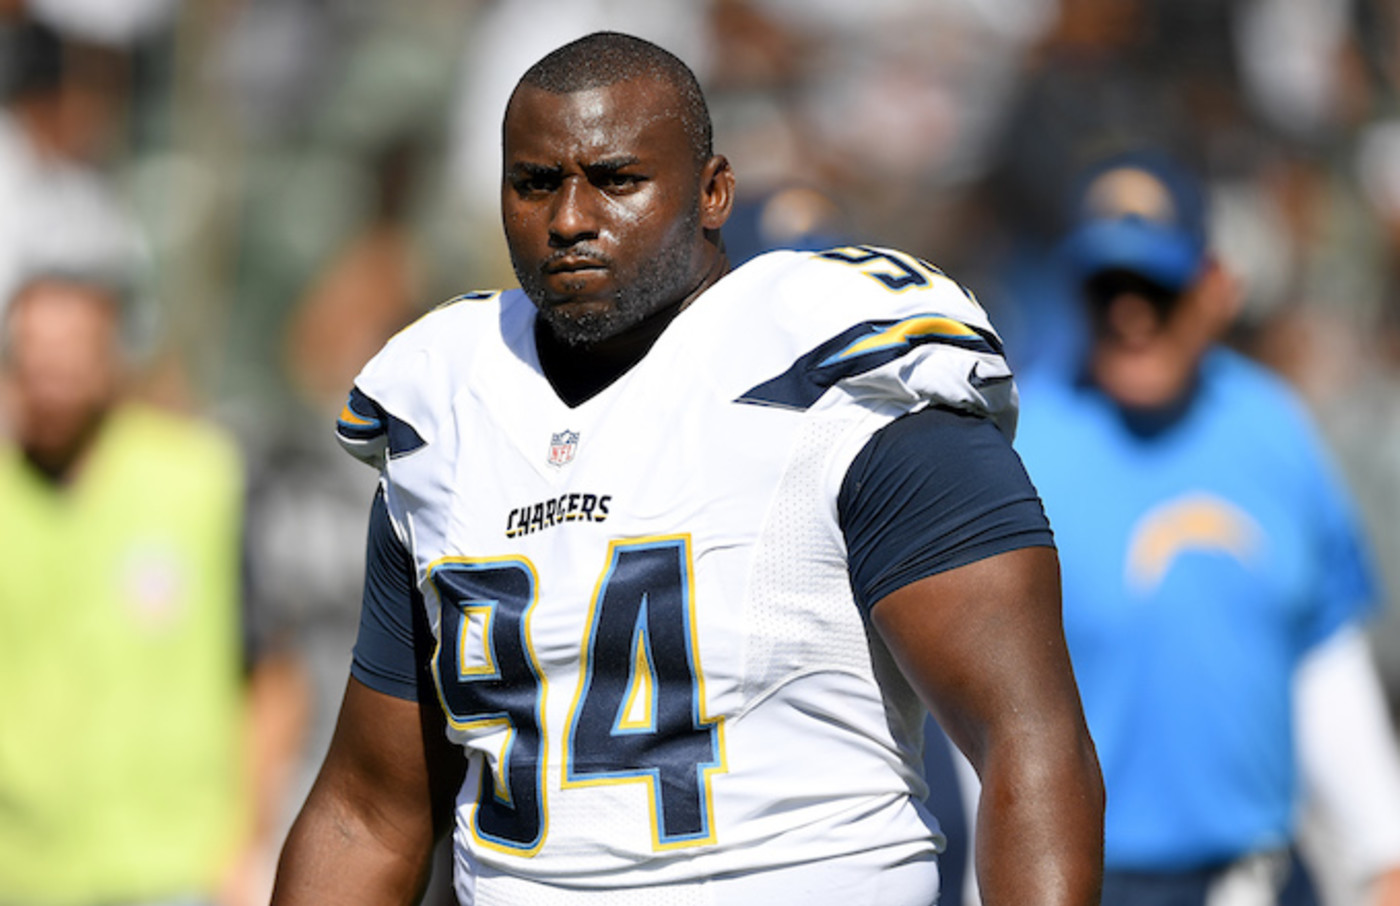 Corey Liuget sues trainer over PEDs suspension